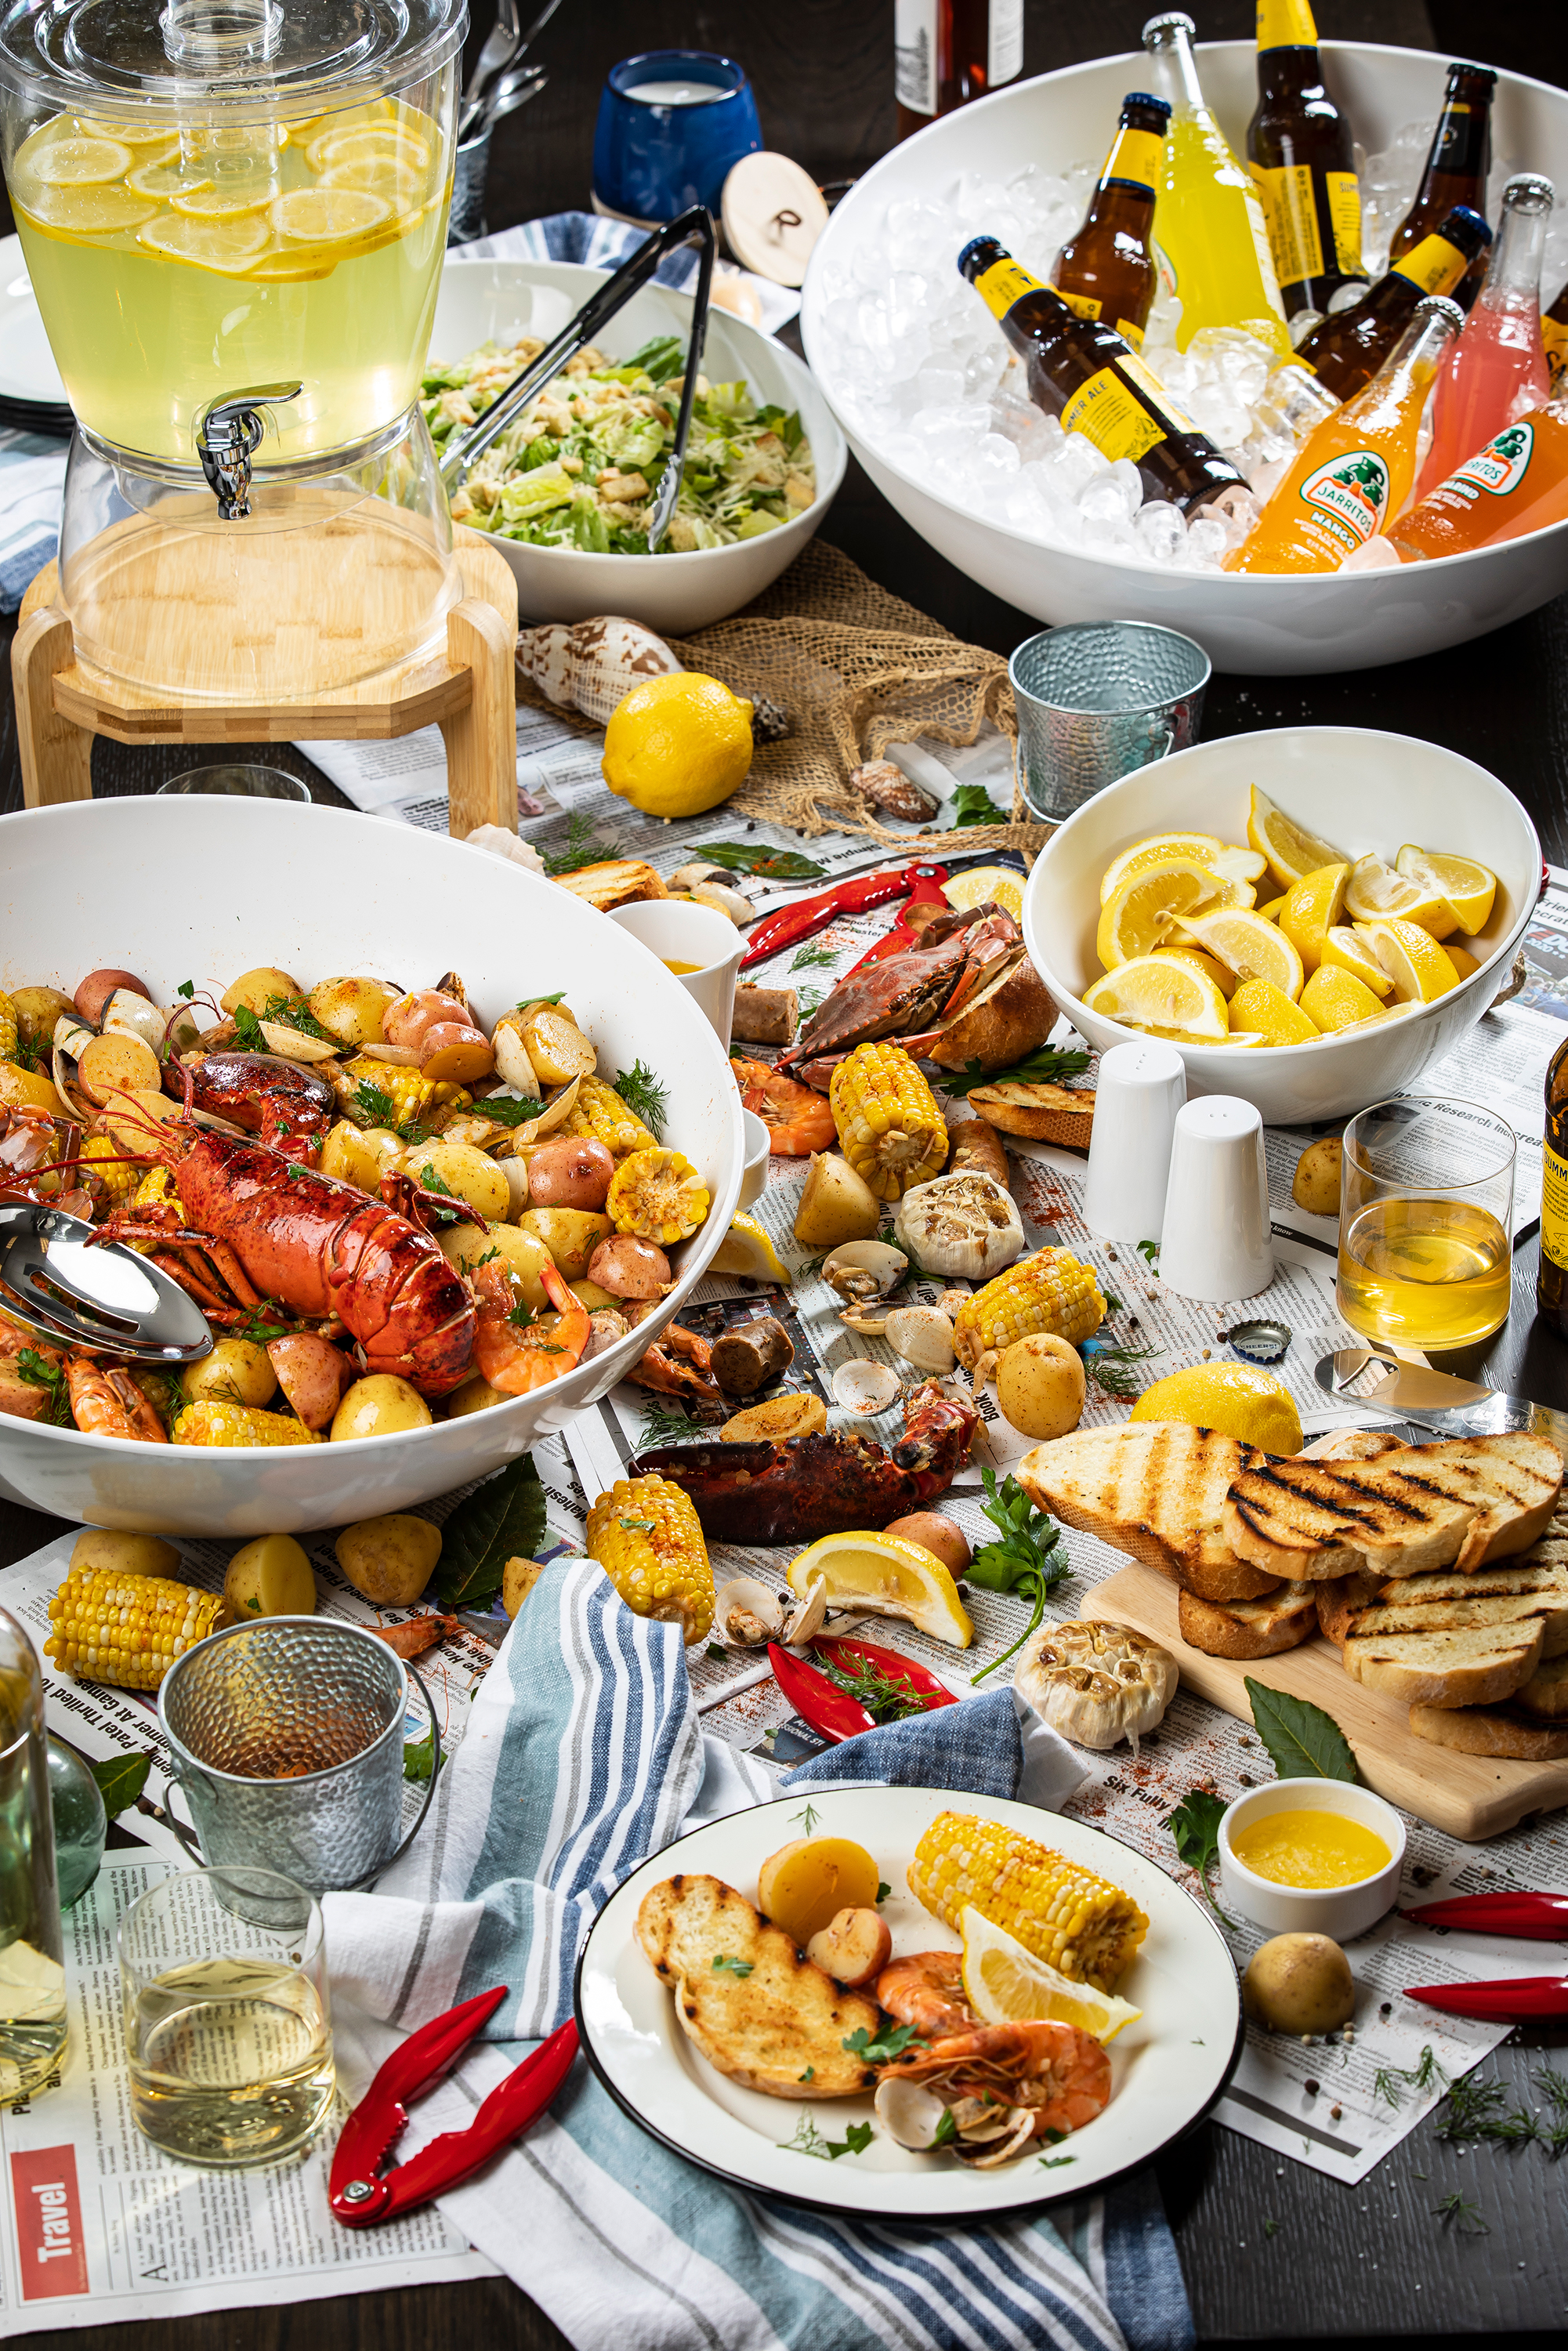 Lobster Bake with TableCraft